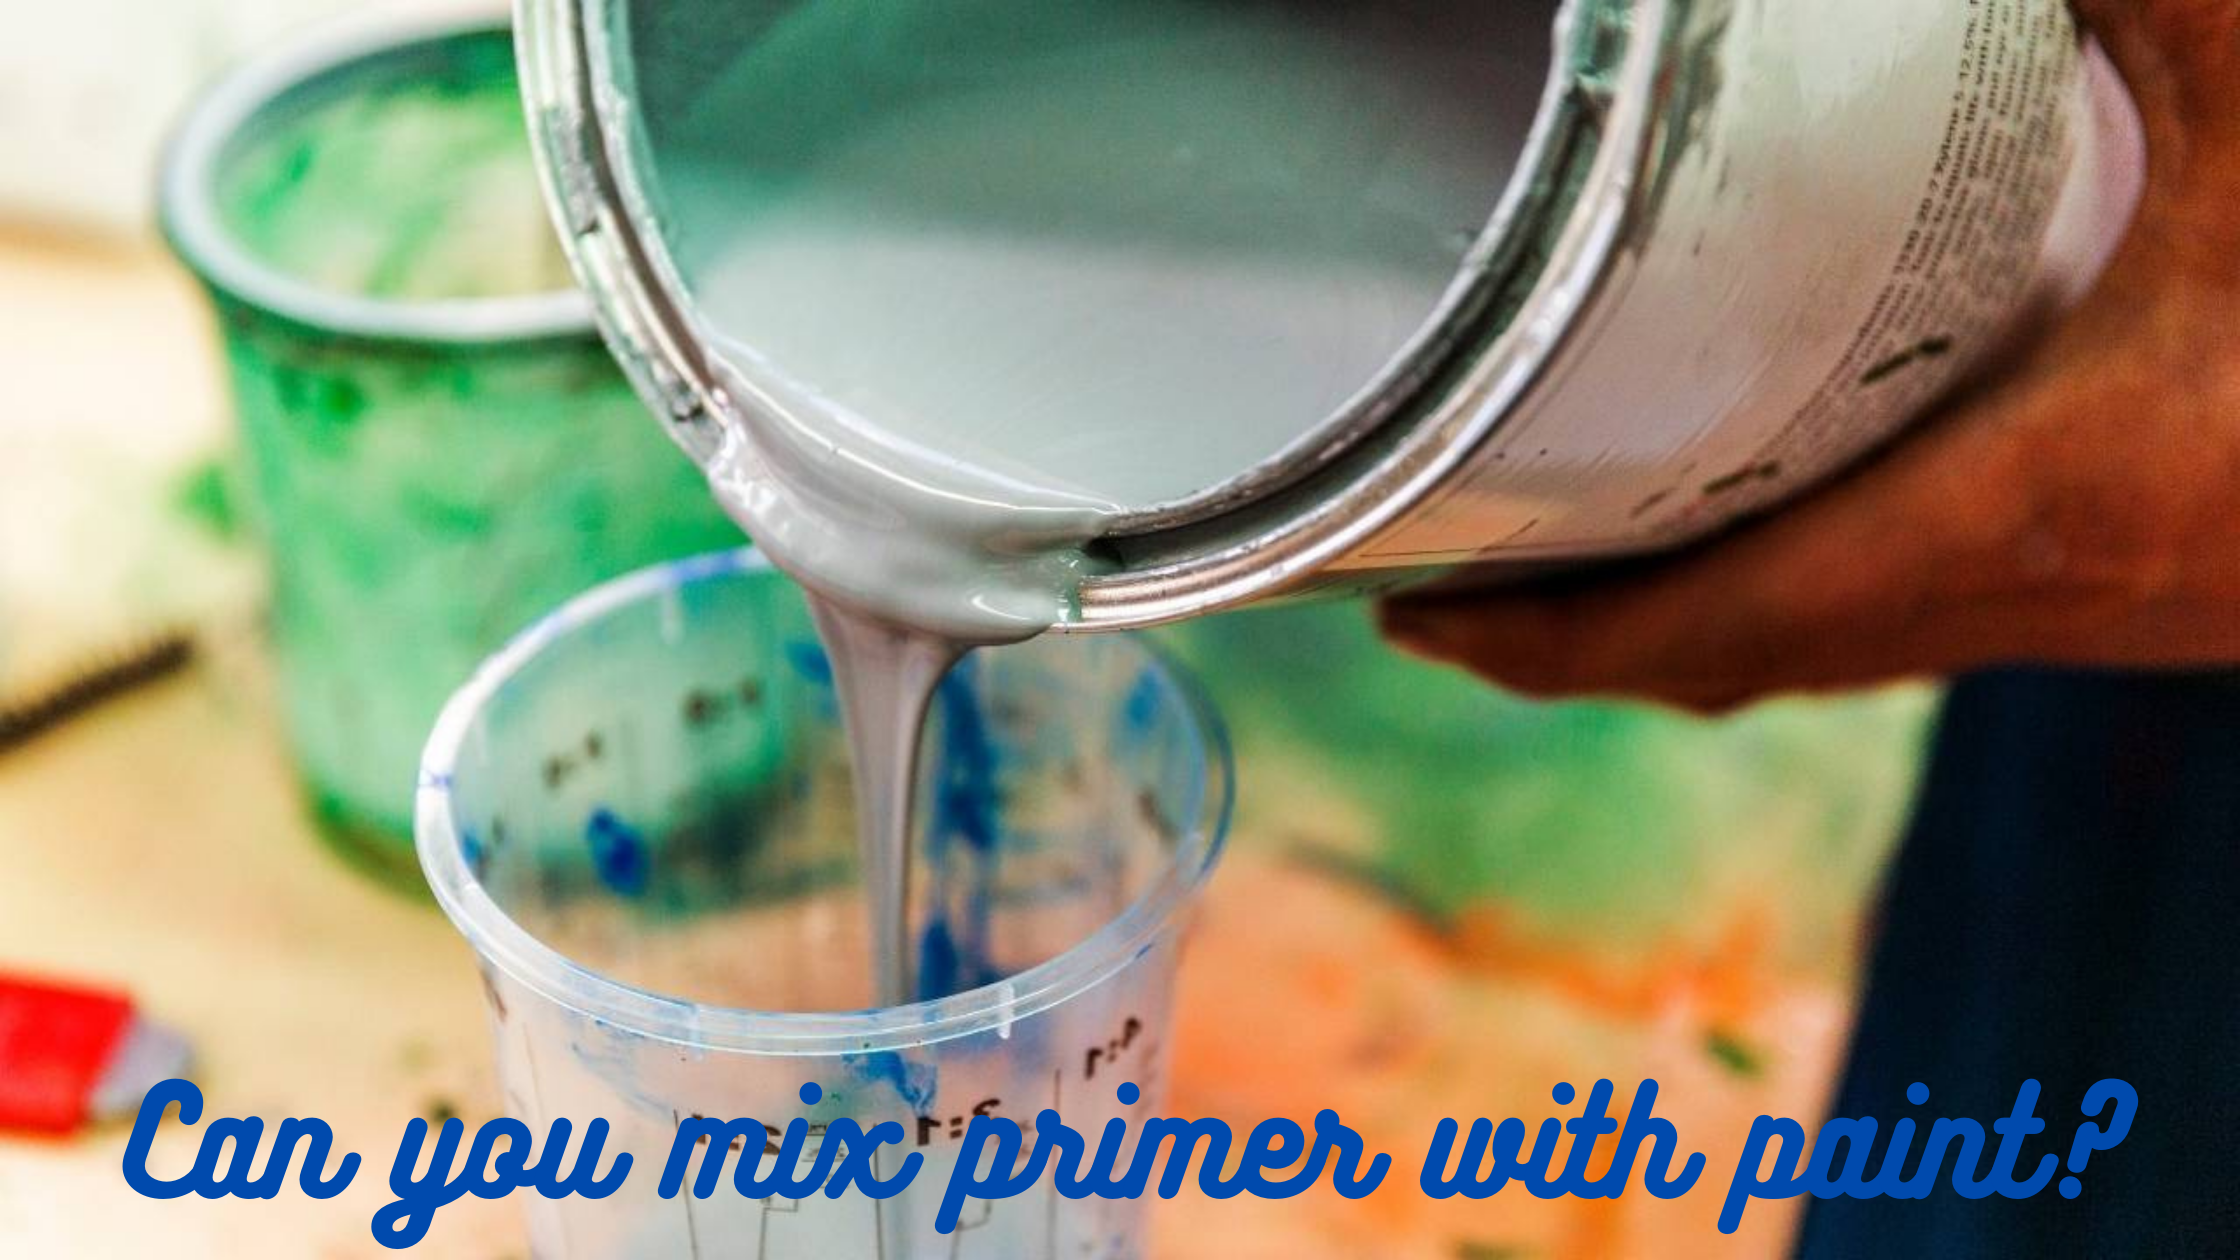 Can you mix primer with paint